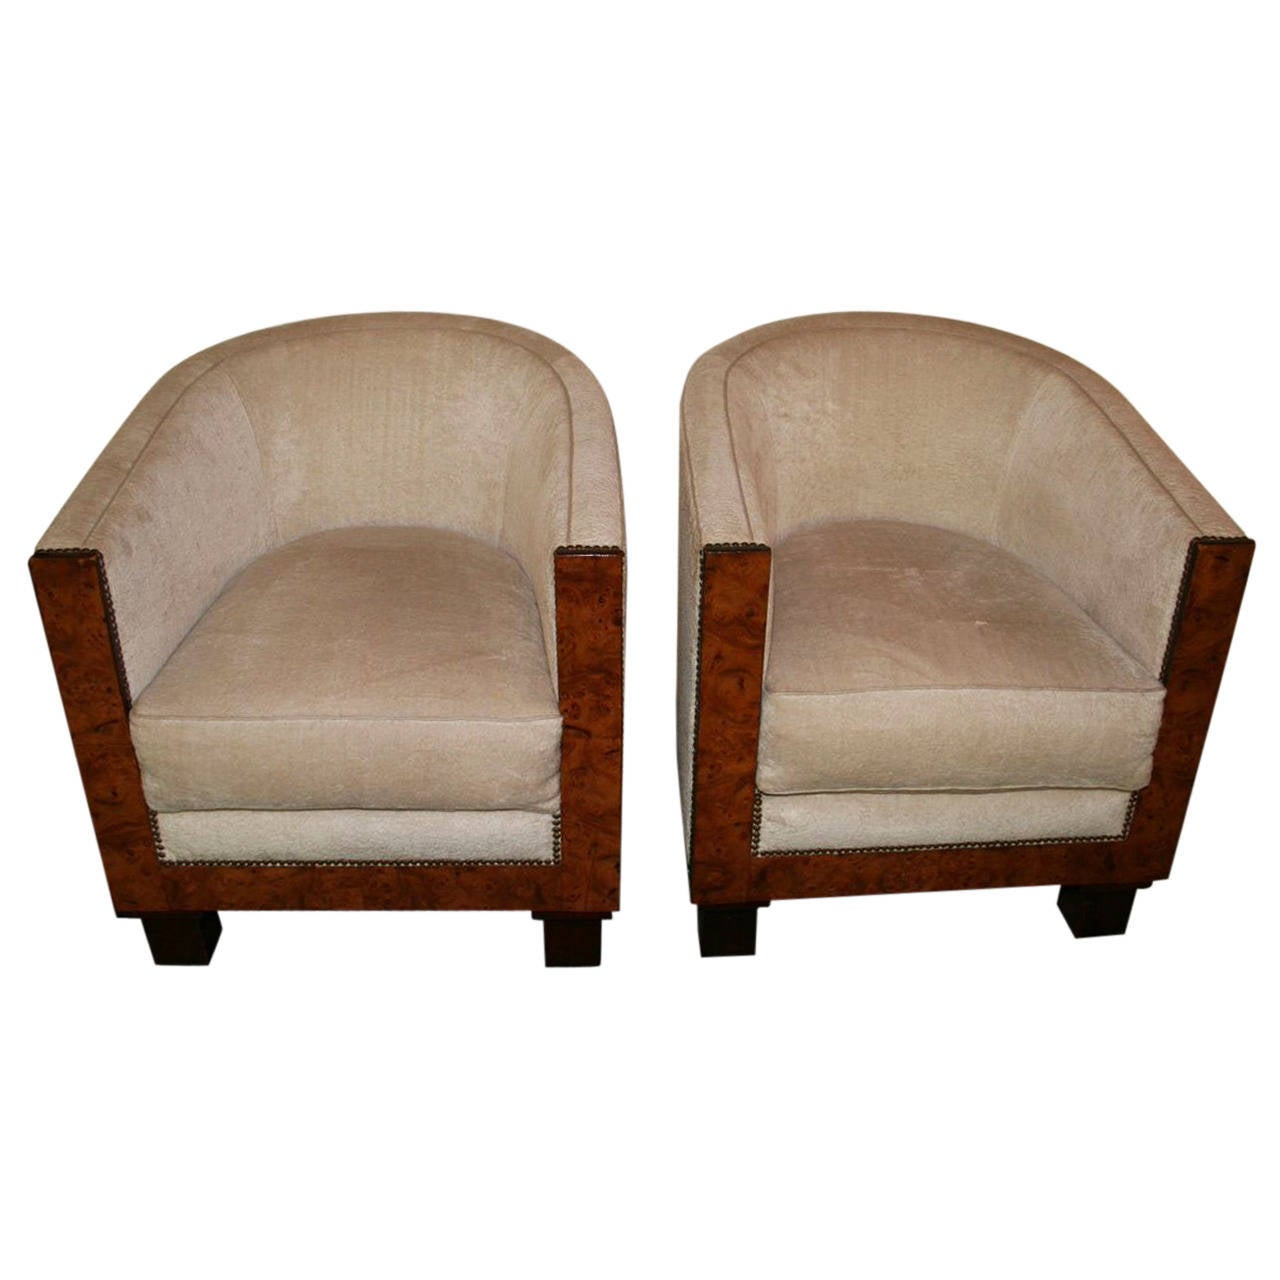 french barrel chair black resin chairs pair of 1930s art deco at 1stdibs